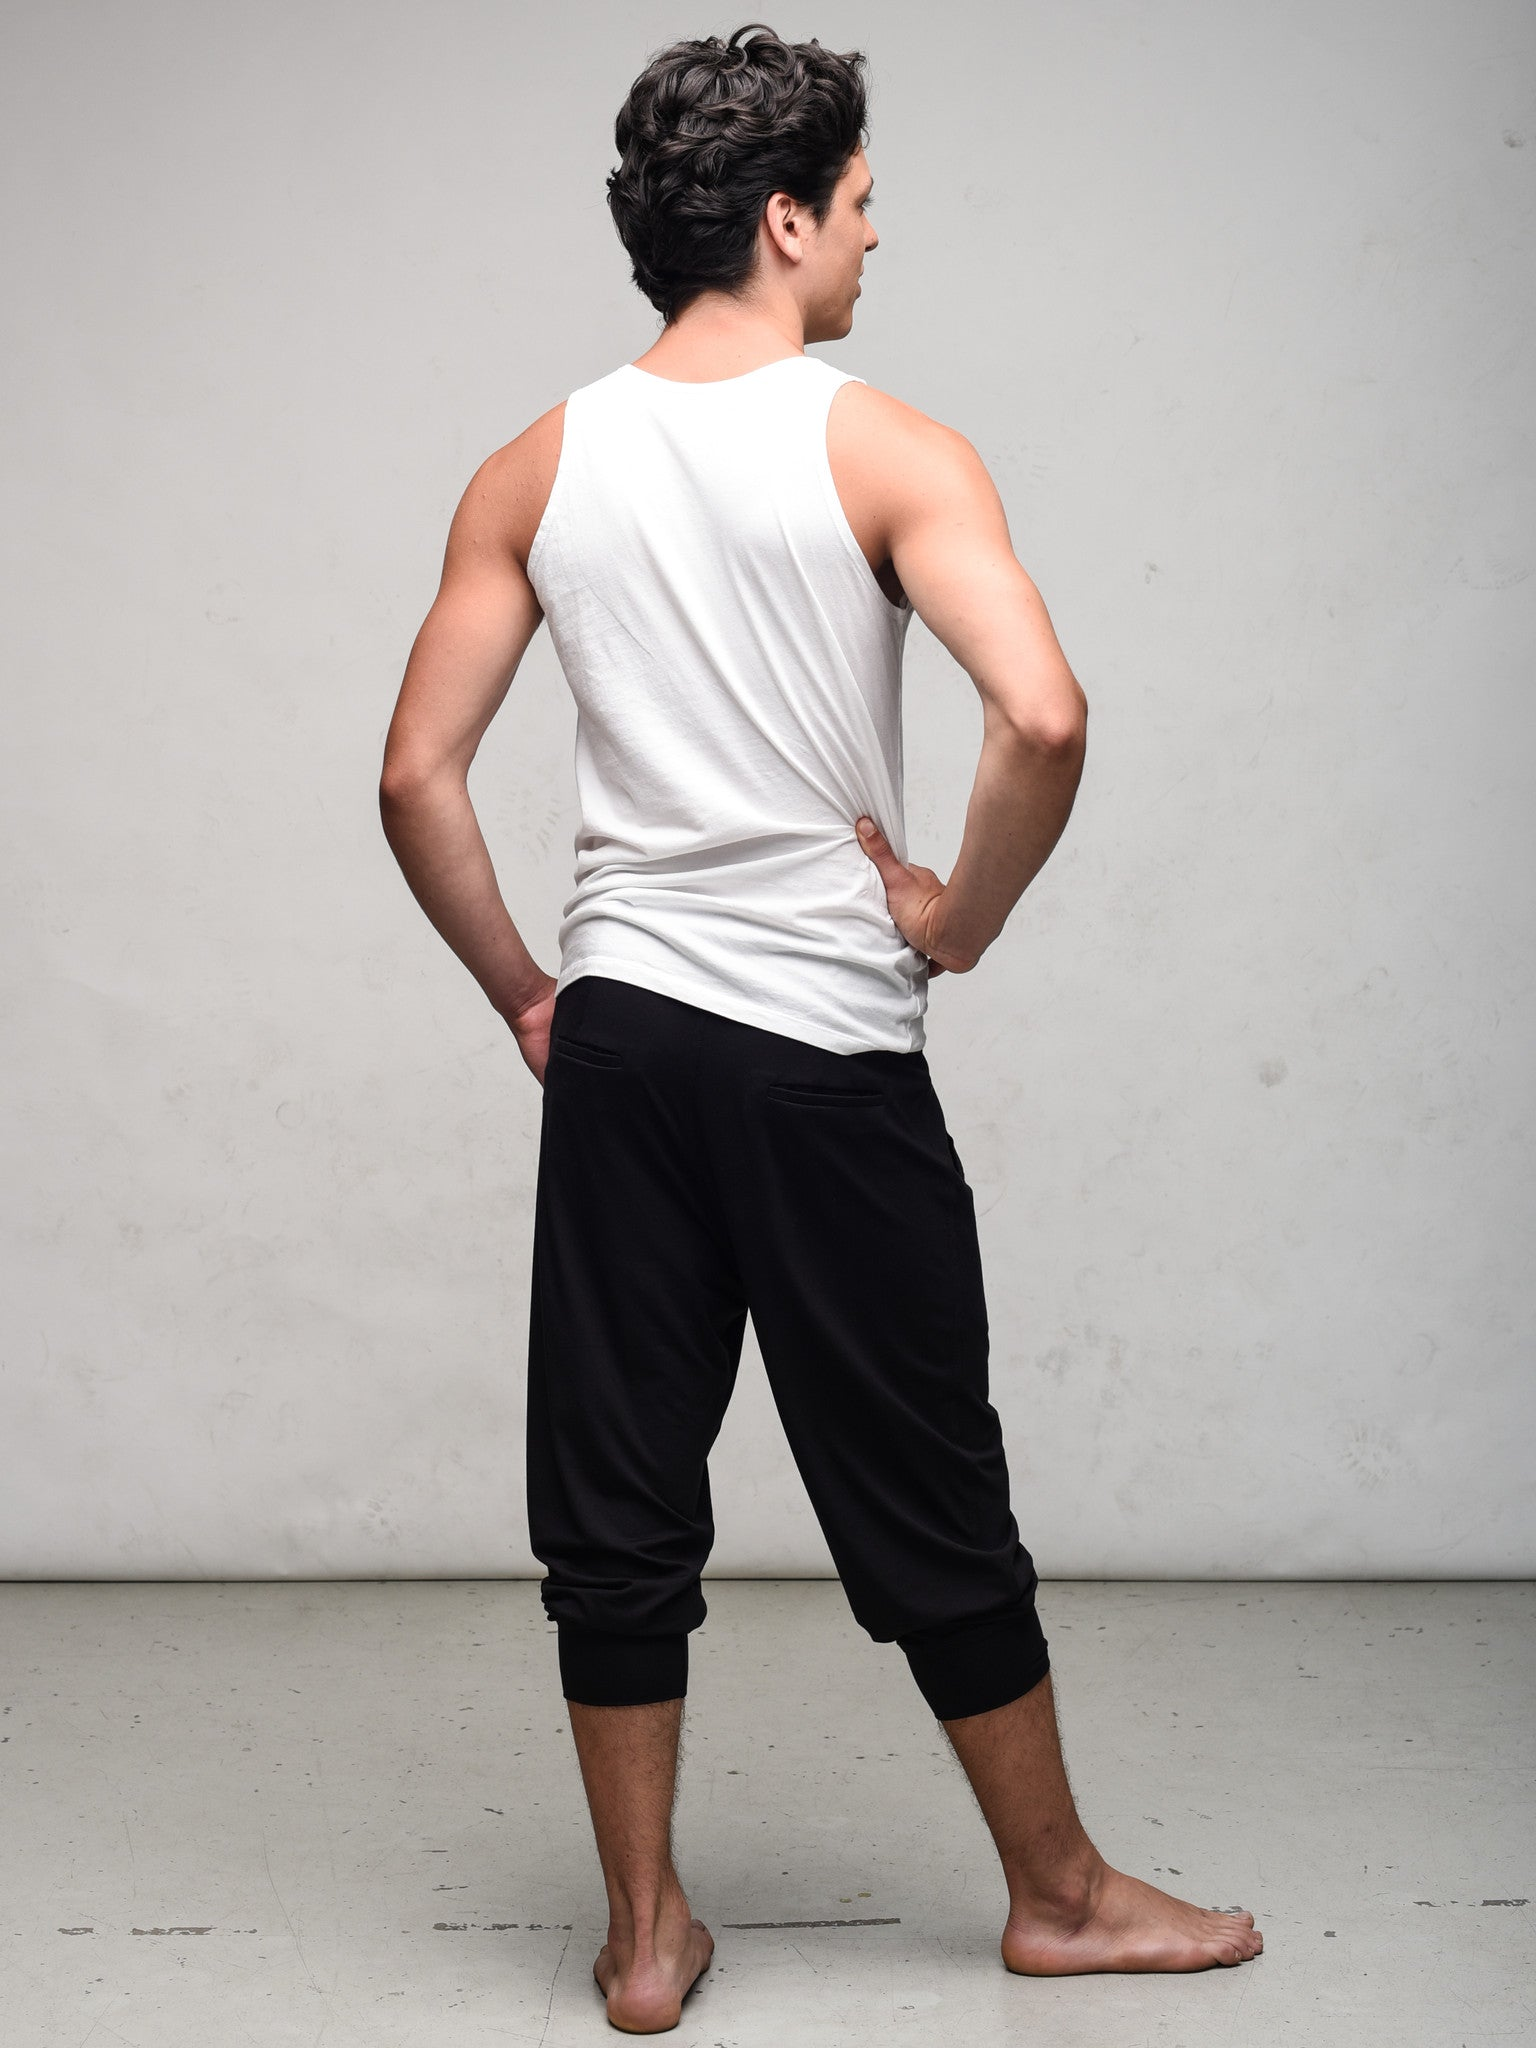 Men's Slender Tank - Organic Cotton